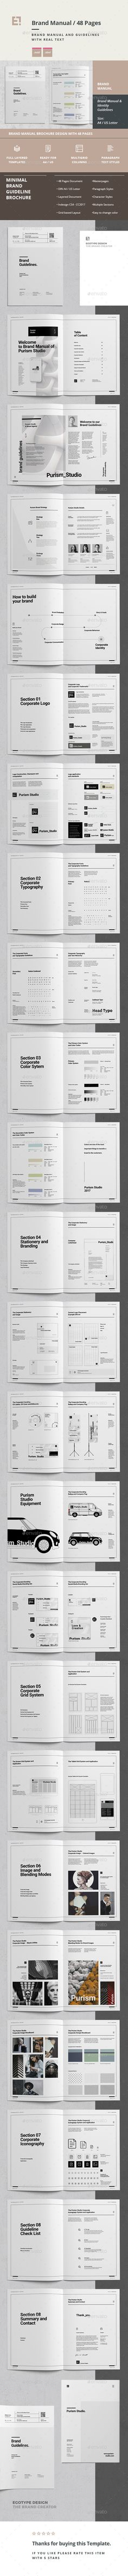 Brand Manual and Identity Template ¨C Corporate Design Brochure ¨C with real text! Minimal and Professional Brand Manual and Ident Branding Template, Travel Brochure Template, Bi Fold Brochure, Corporate Brochure, Brochure Design, Branding Design, Corporate Design, Corporate Identity, Stationery Design